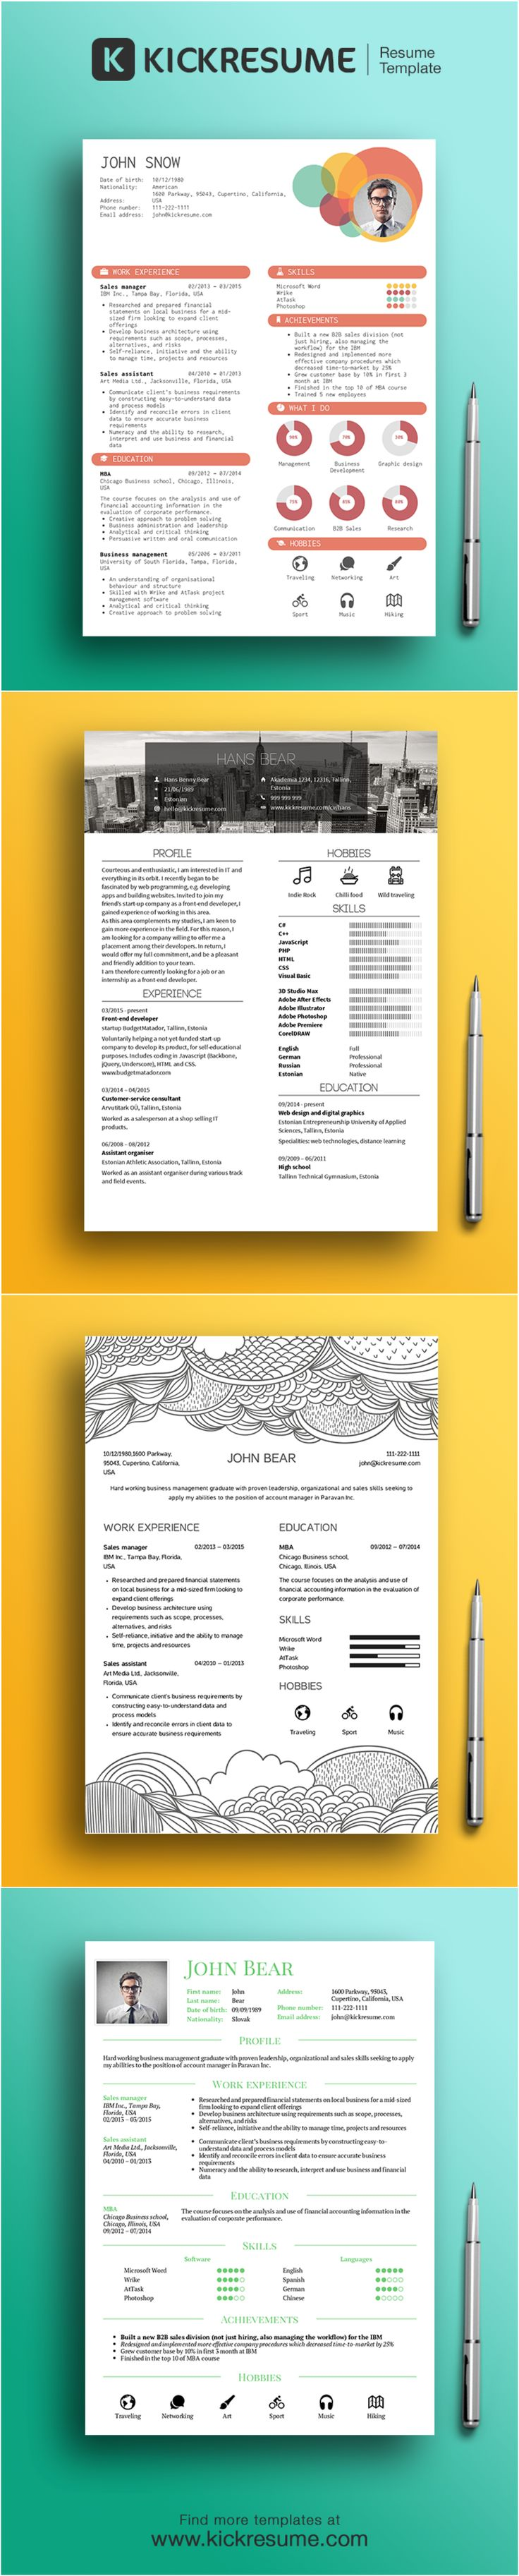 Perfect resume and cover letter are just a click away! >> www.kickresume.com [resume design, creative resume, minimalistic resume, cover letter design, resume sample, resume template]